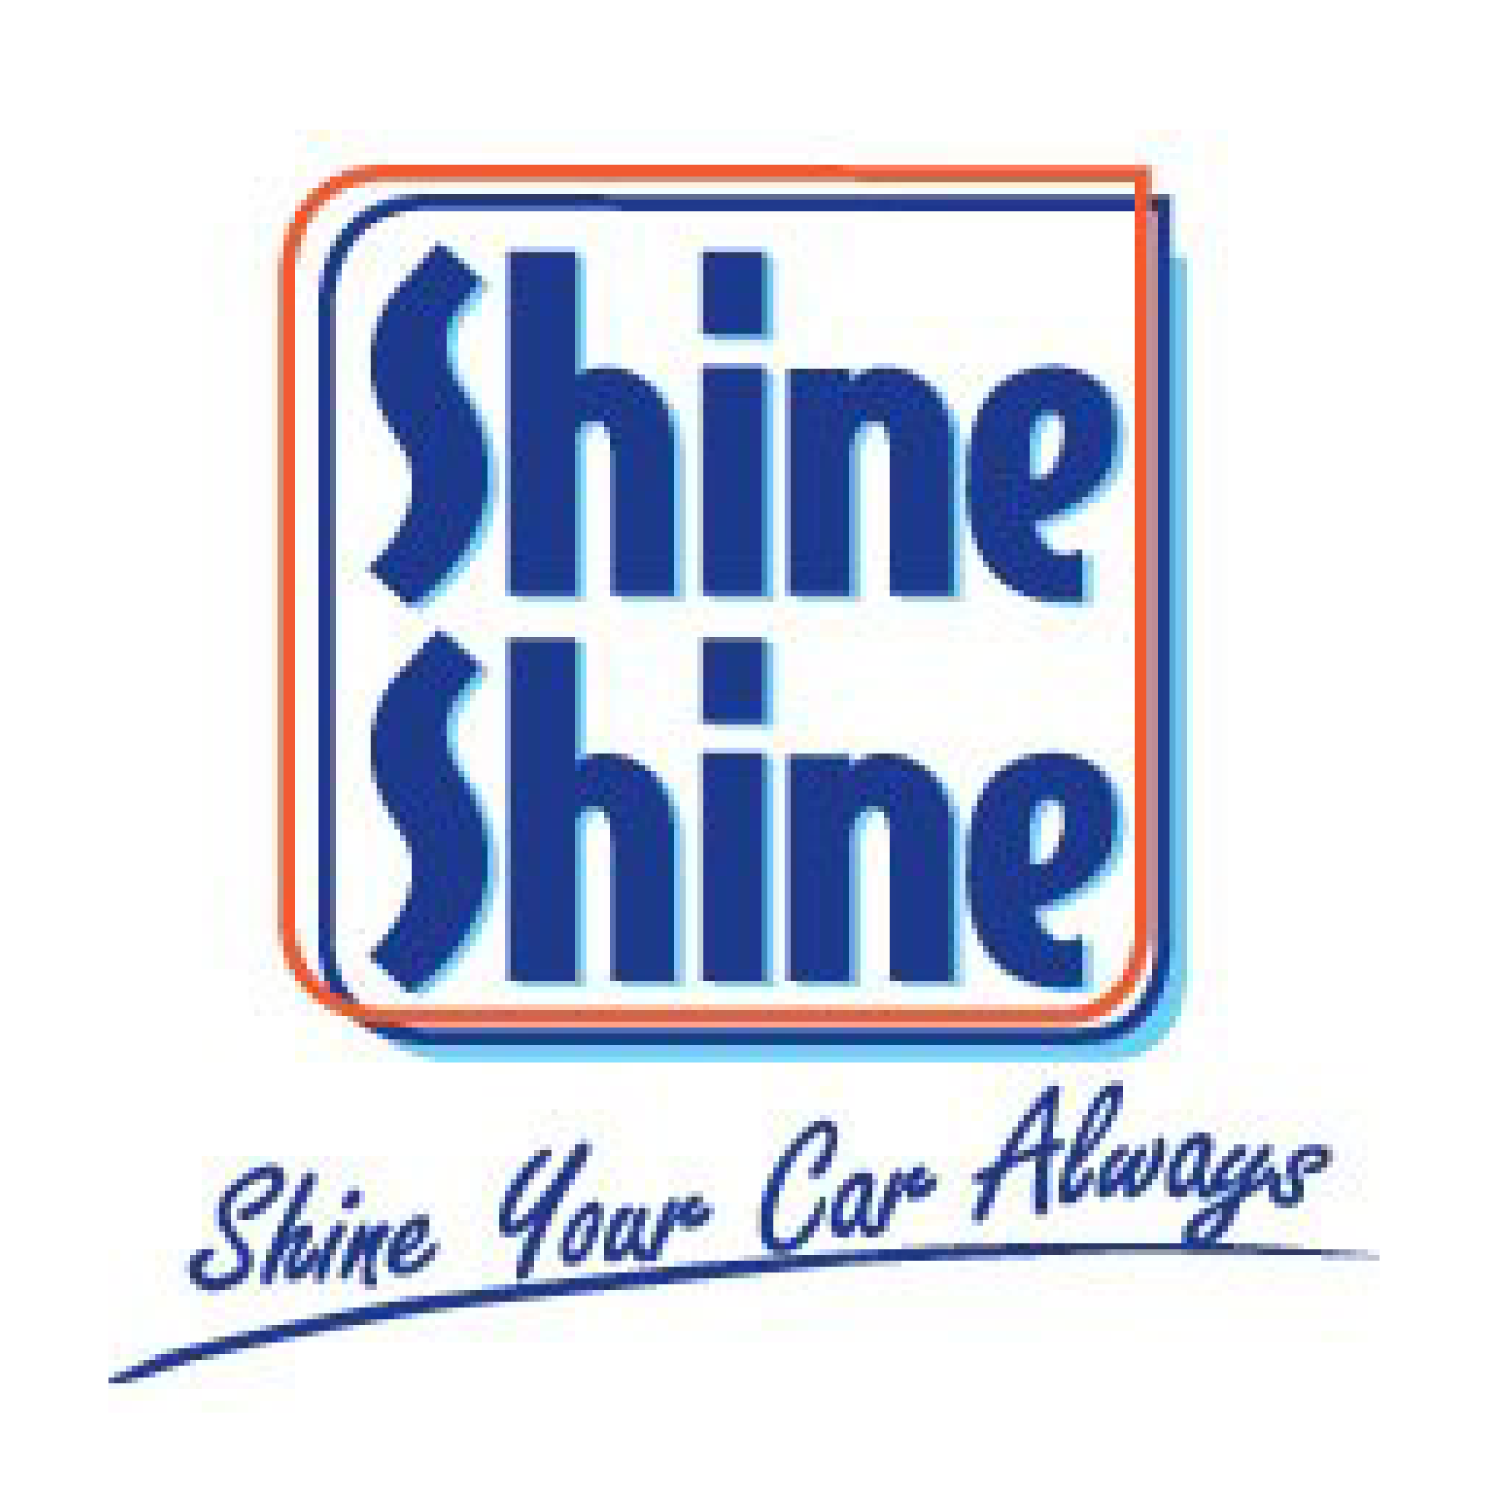 SHINE-SHINE CAR WASH